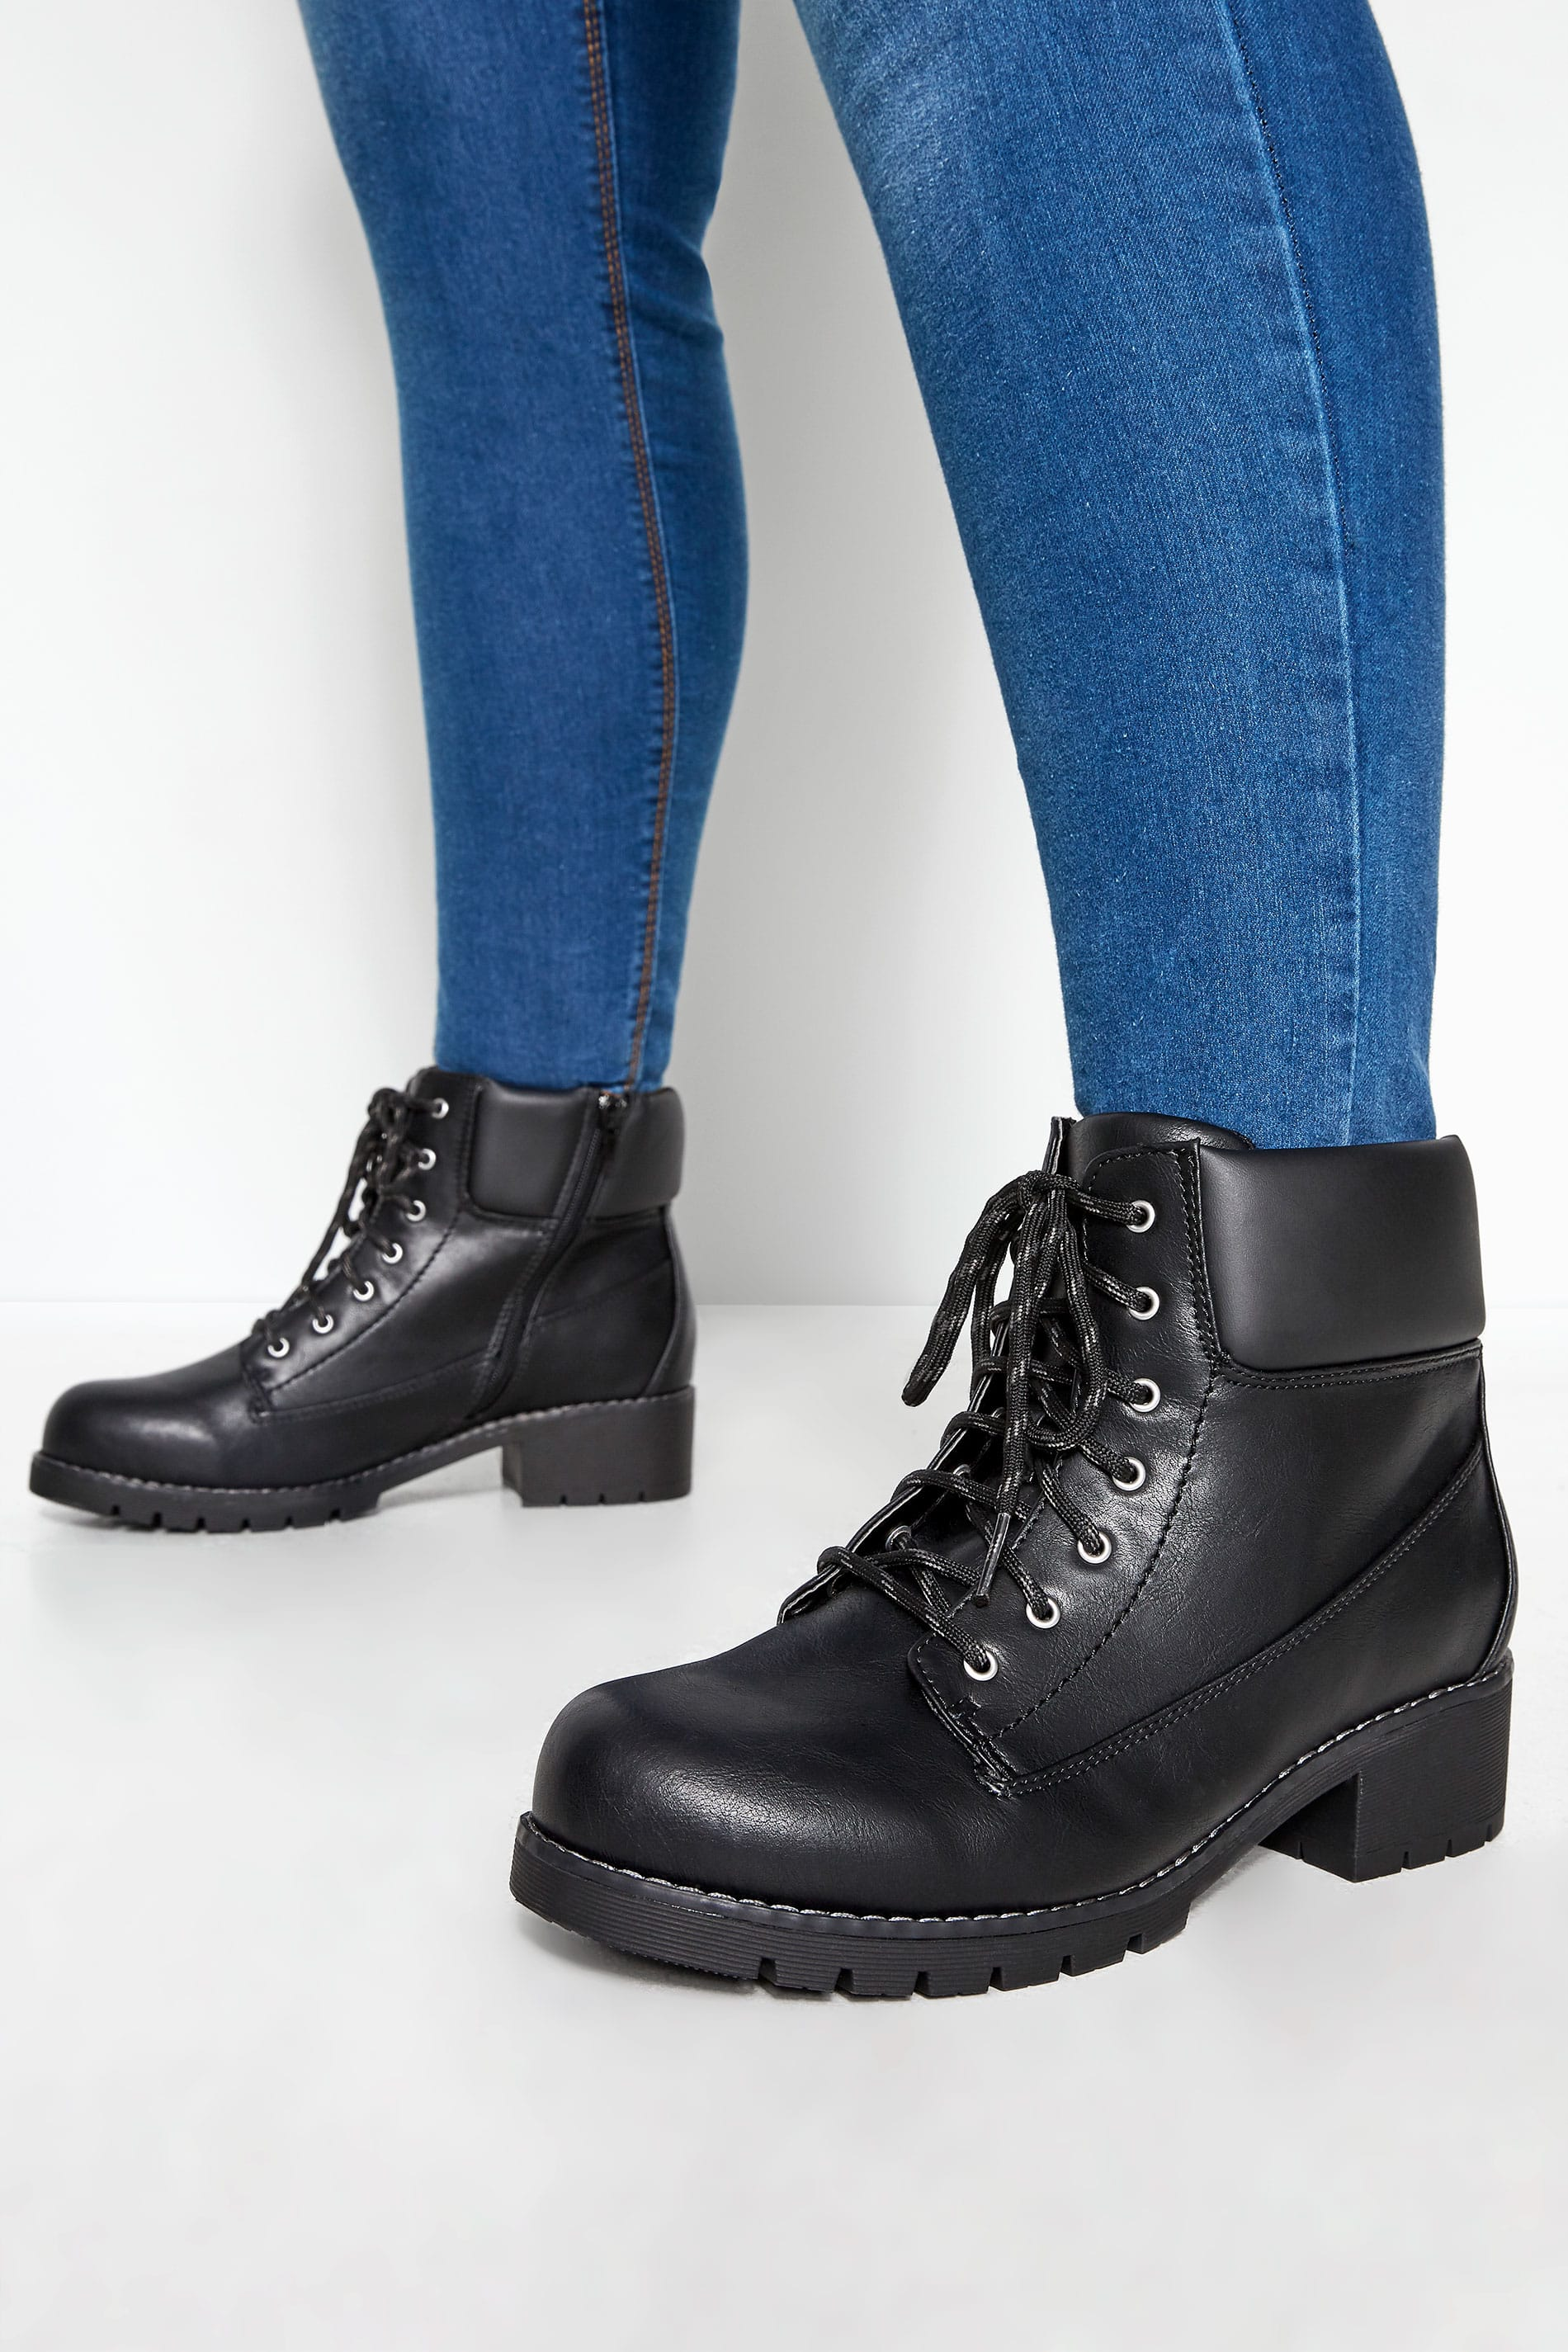 Black Combat Lace Up Ankle Boots In Extra Wide Fit